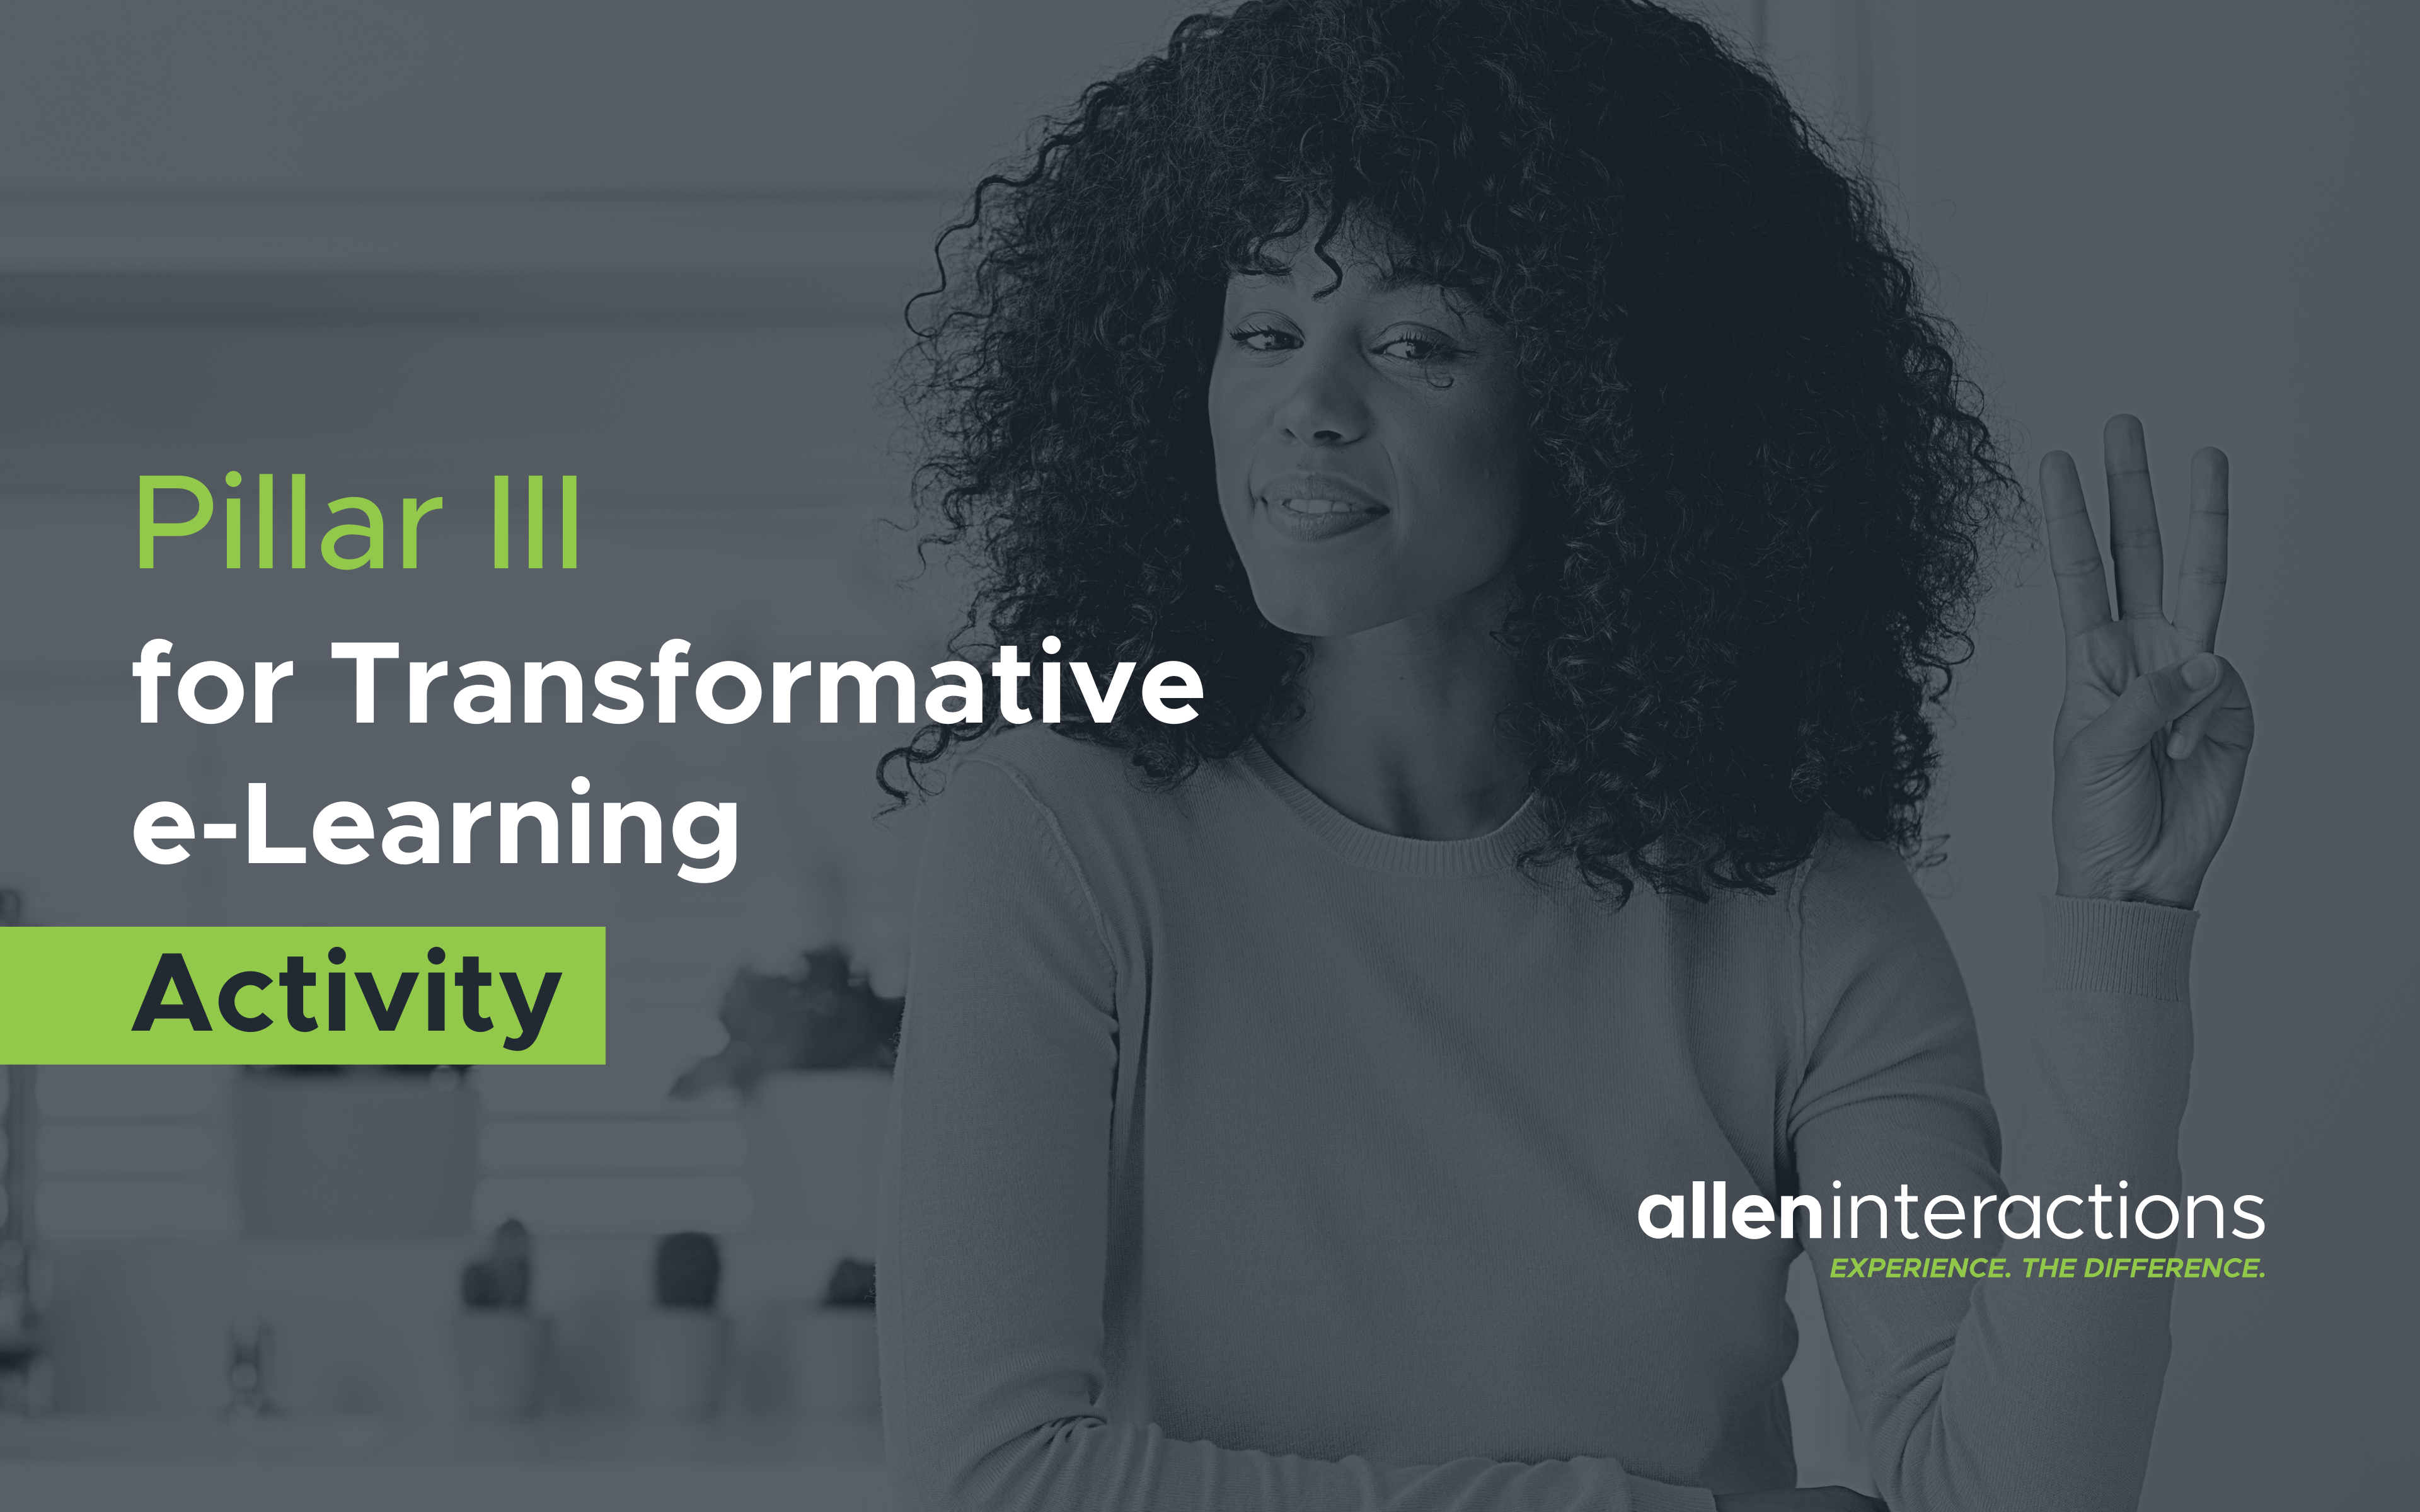 Pillar III for Transformative e-Learning Instructional Design: Activity